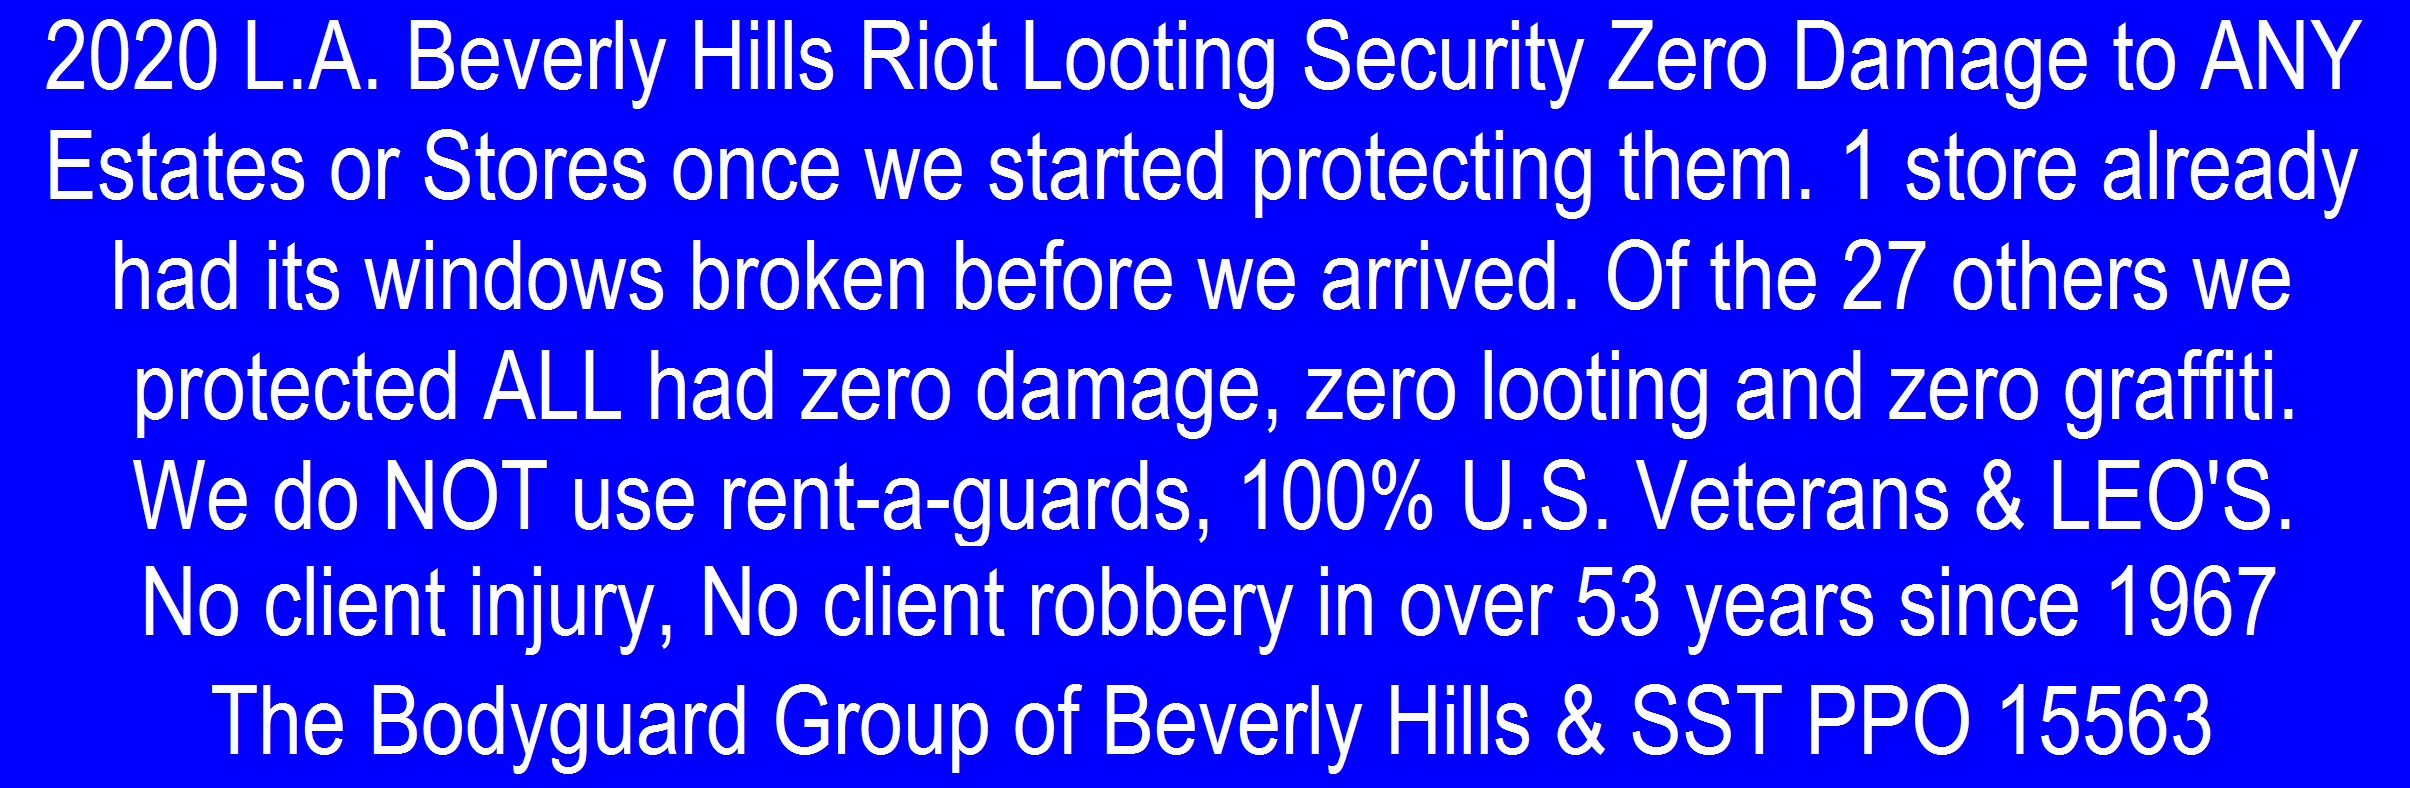 Kris Herzog Beverly Hills 90210 Los Angeles 2020 RIOTS The Bodyguard Group of Beverly HIlls riot security and SST PPO 15563